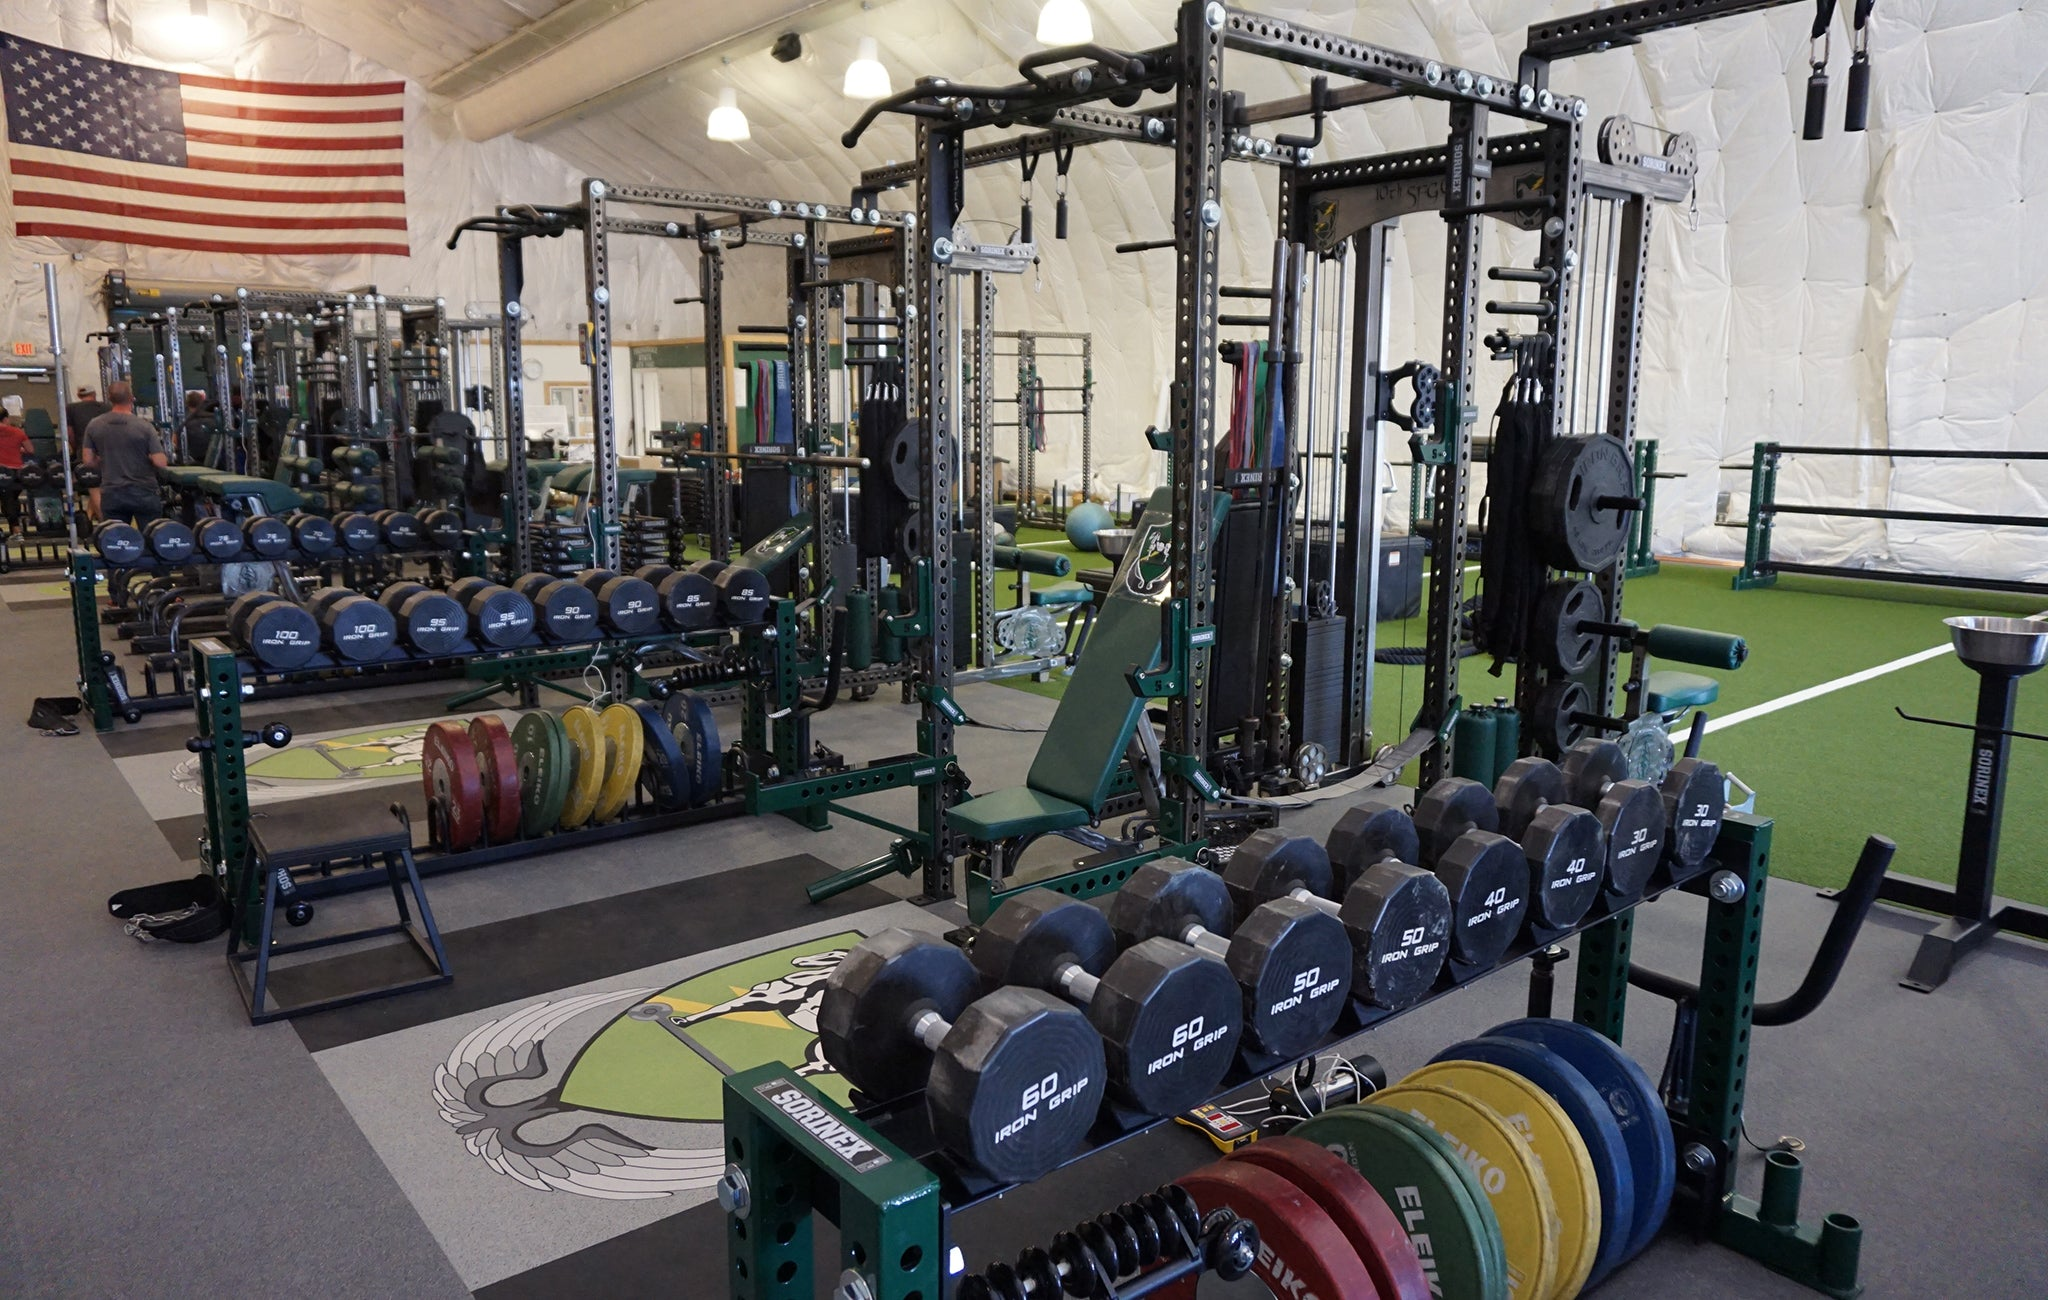 10th SFG Military Weight Room